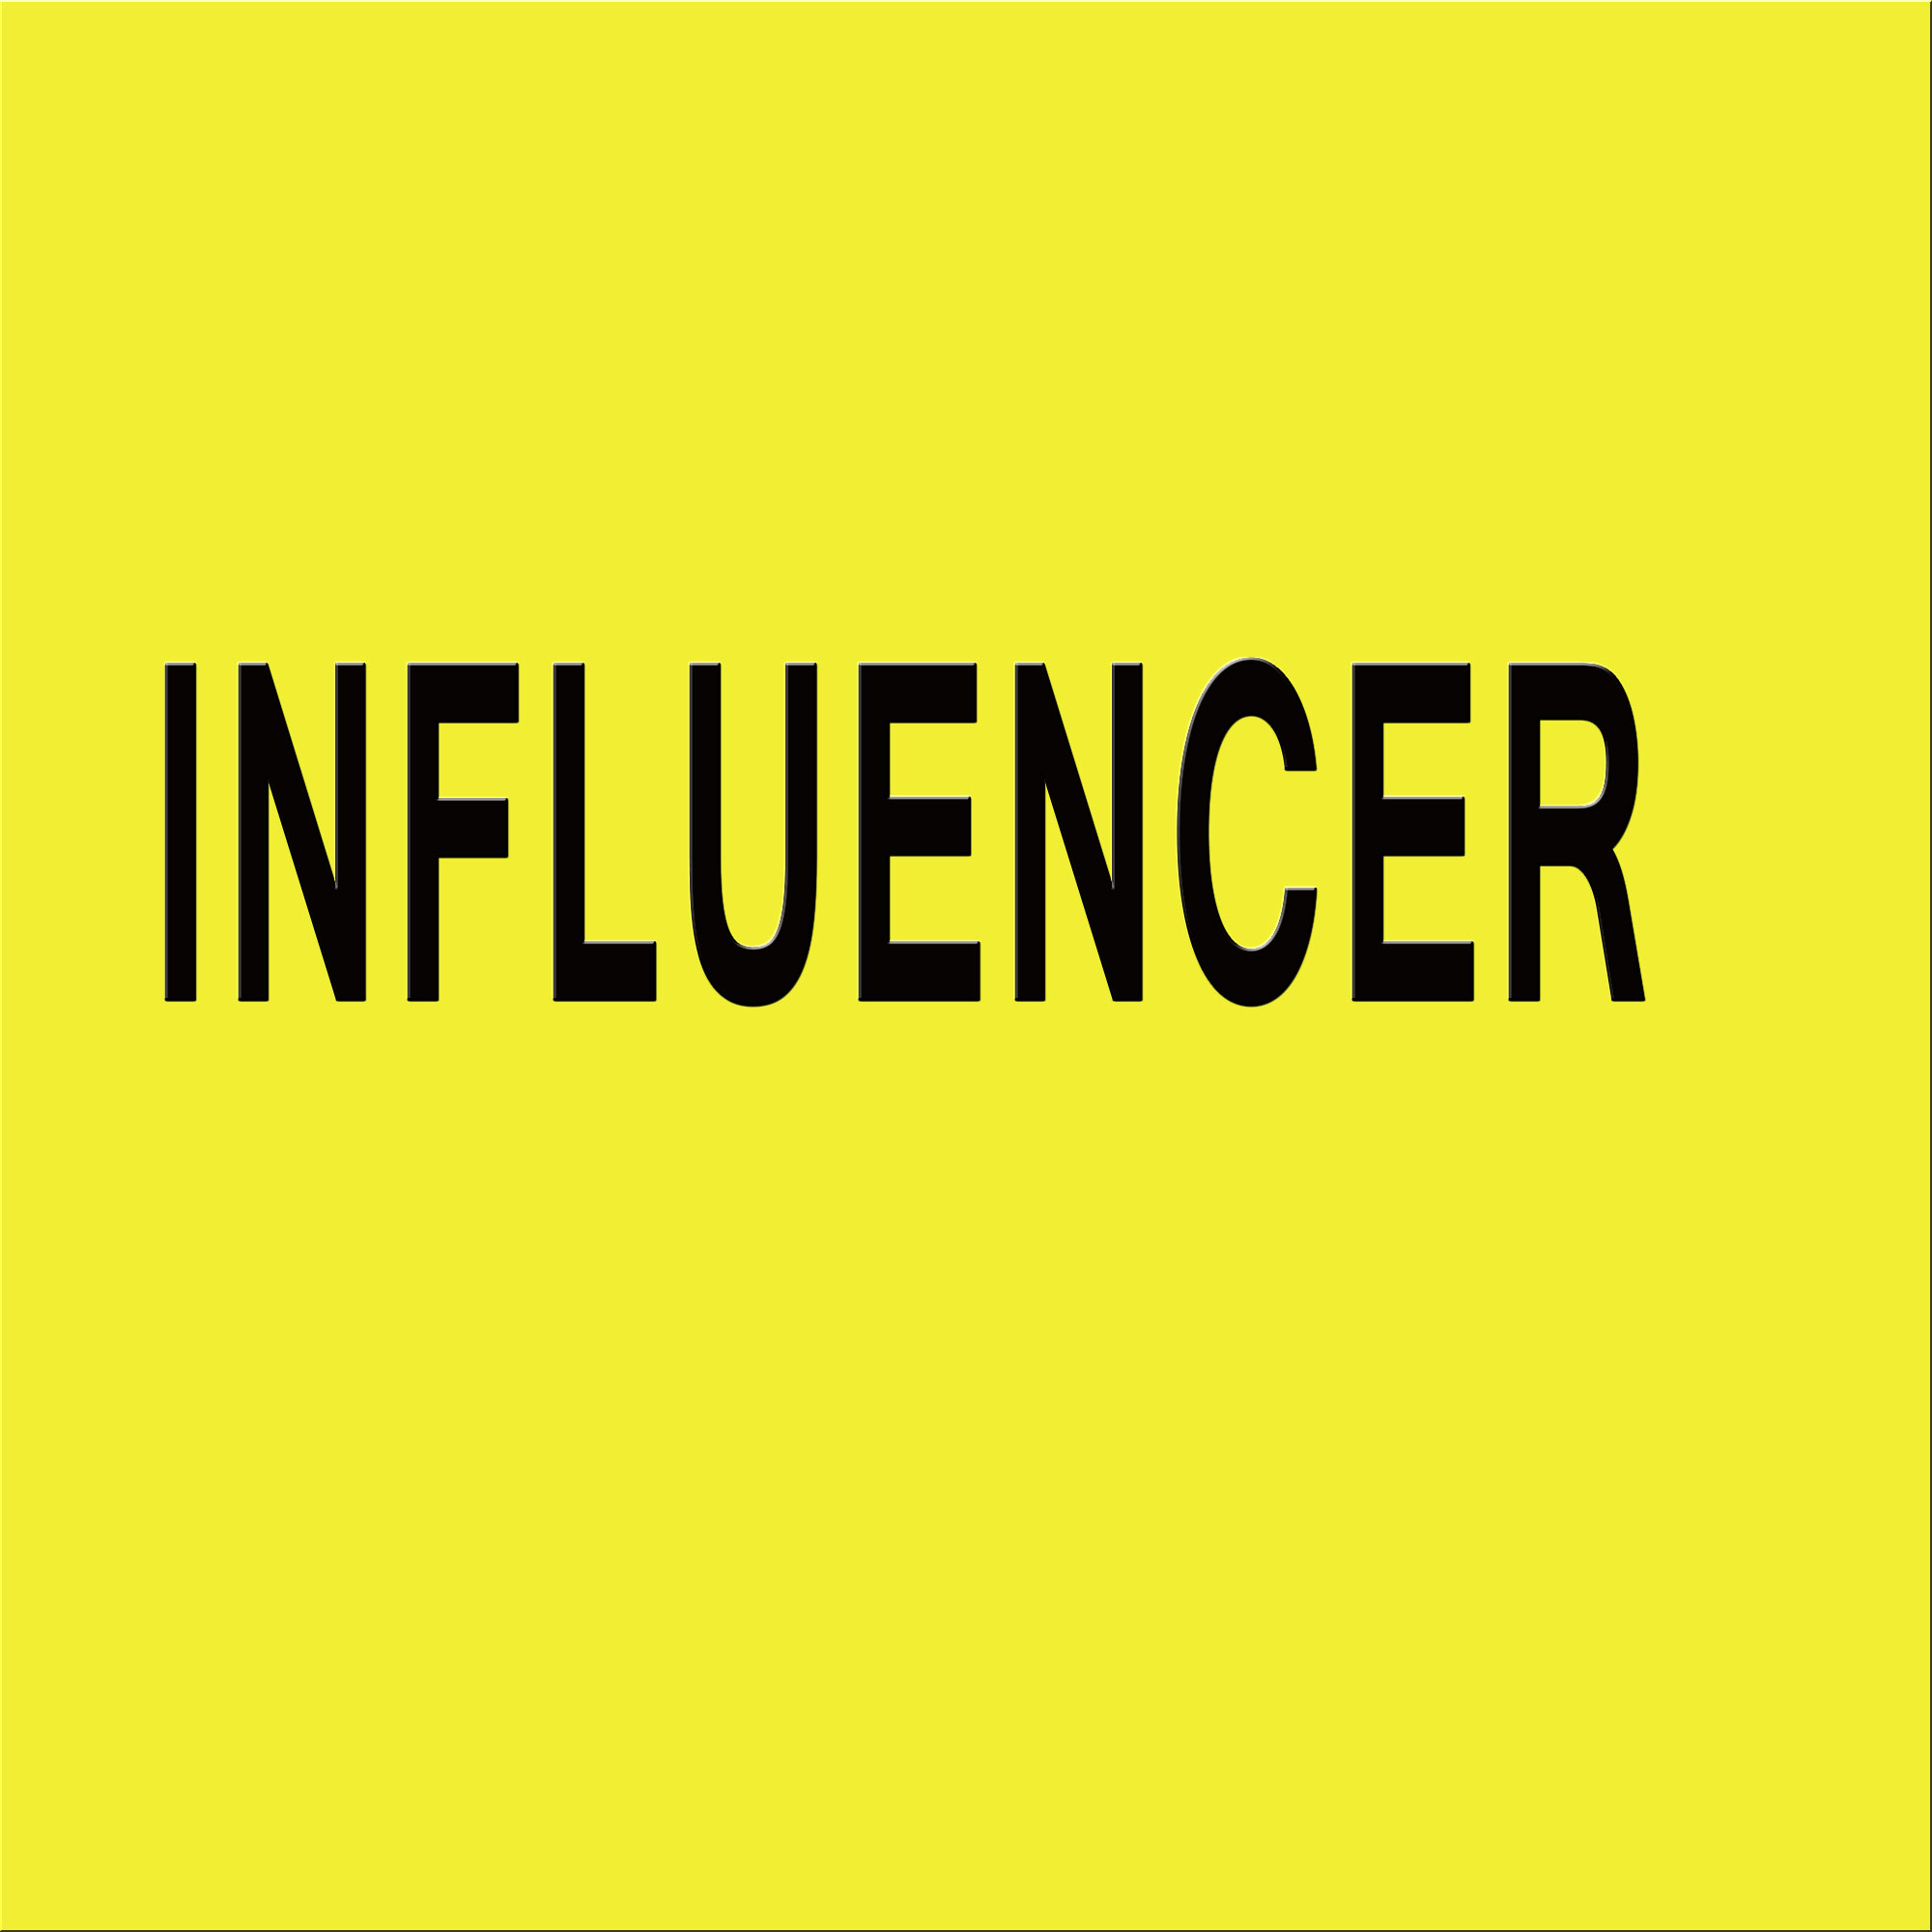 influencer-future